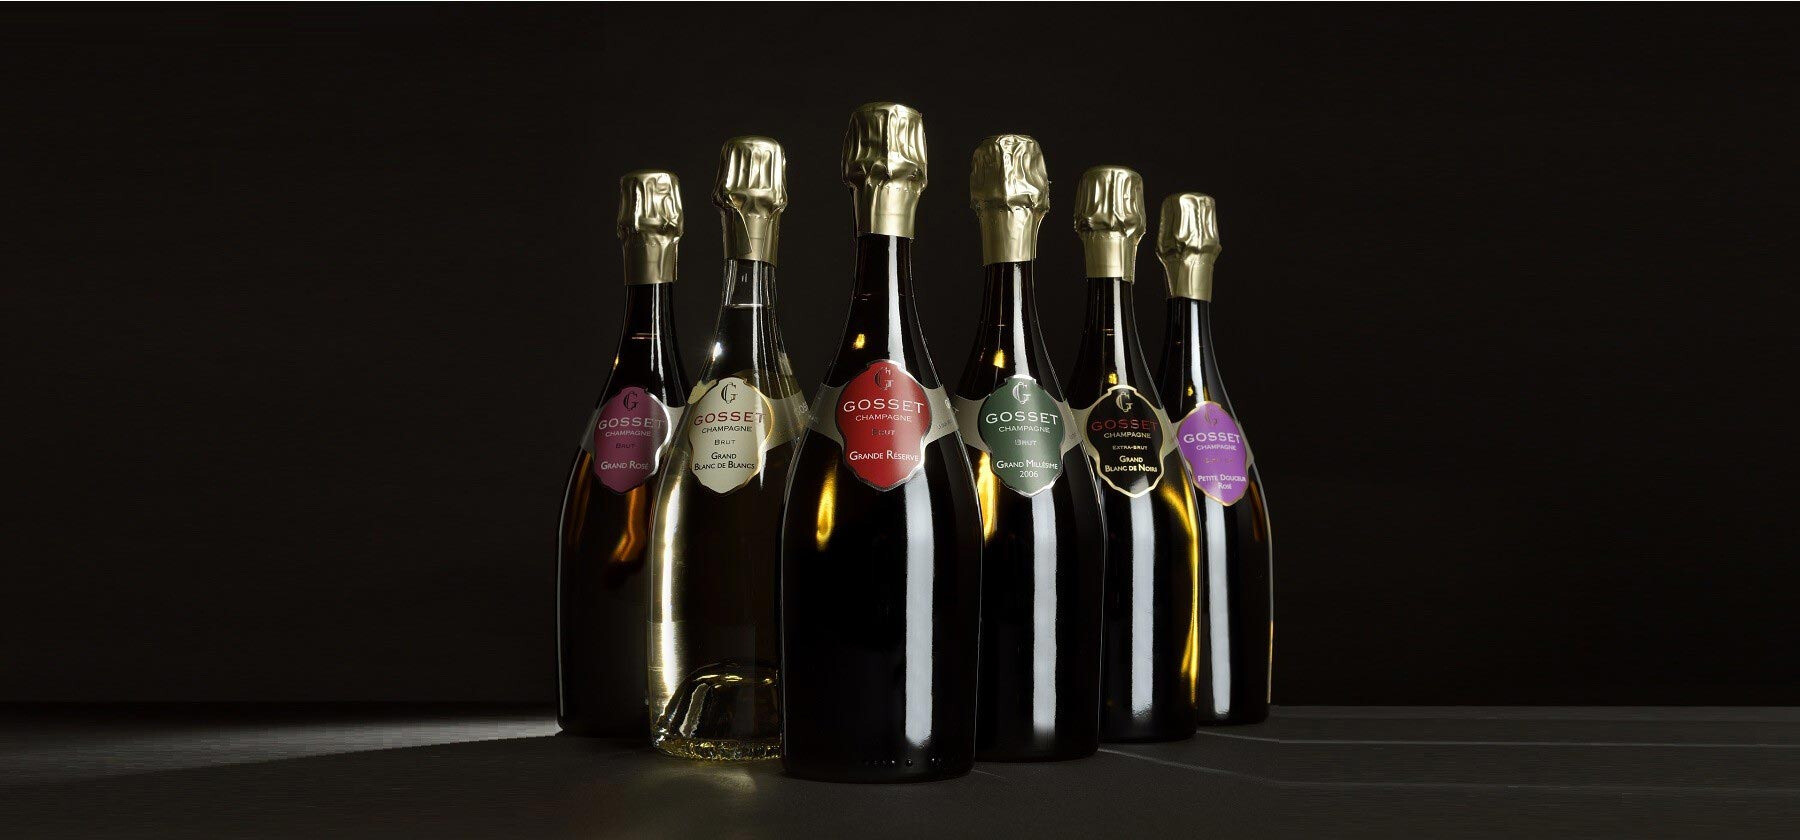 Gosset Champagne The lowest prices in the market...